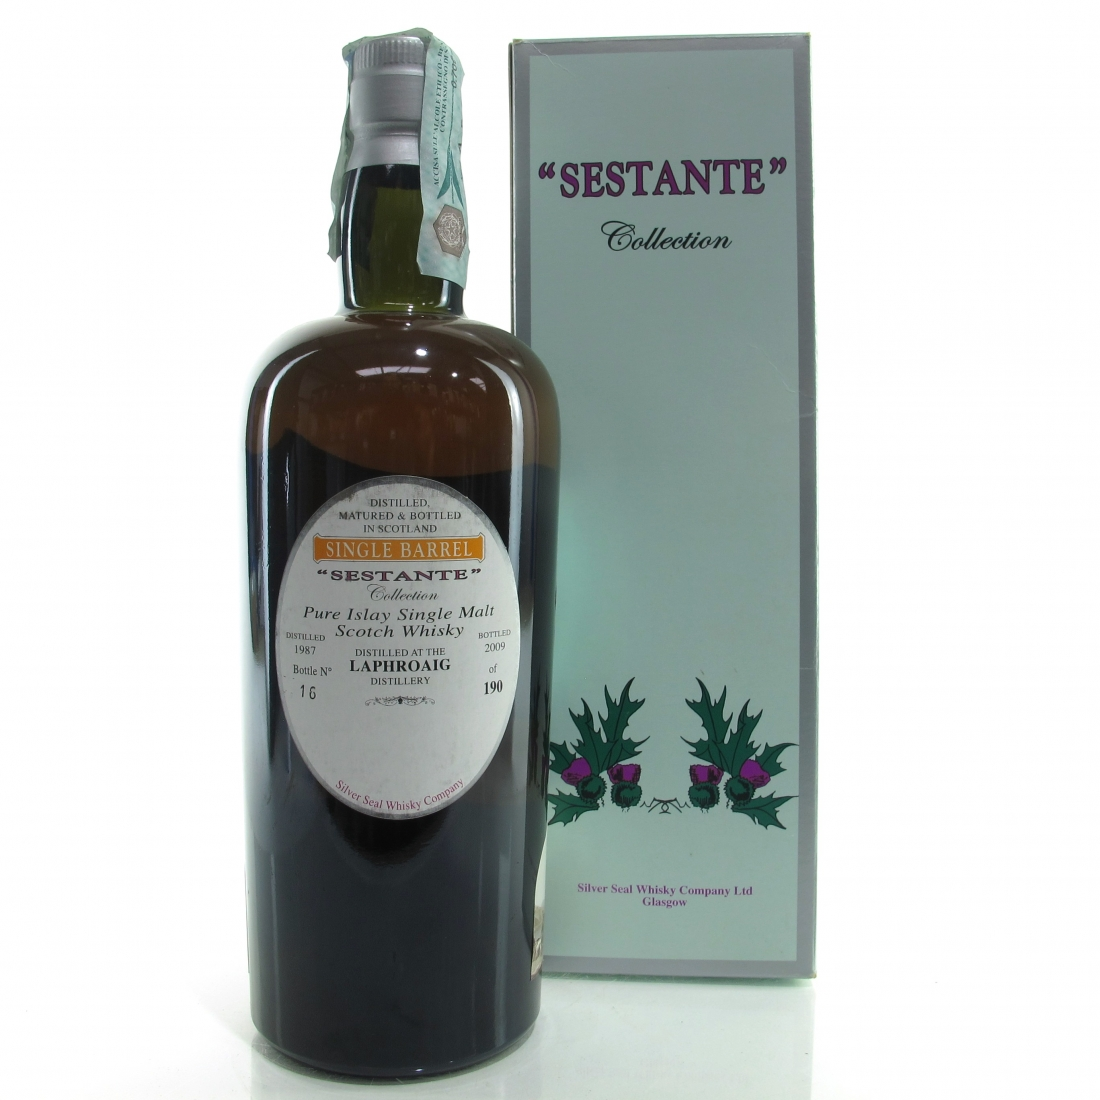 Laphroaig 1987 Silver Seal 22 Year Old / Sestante